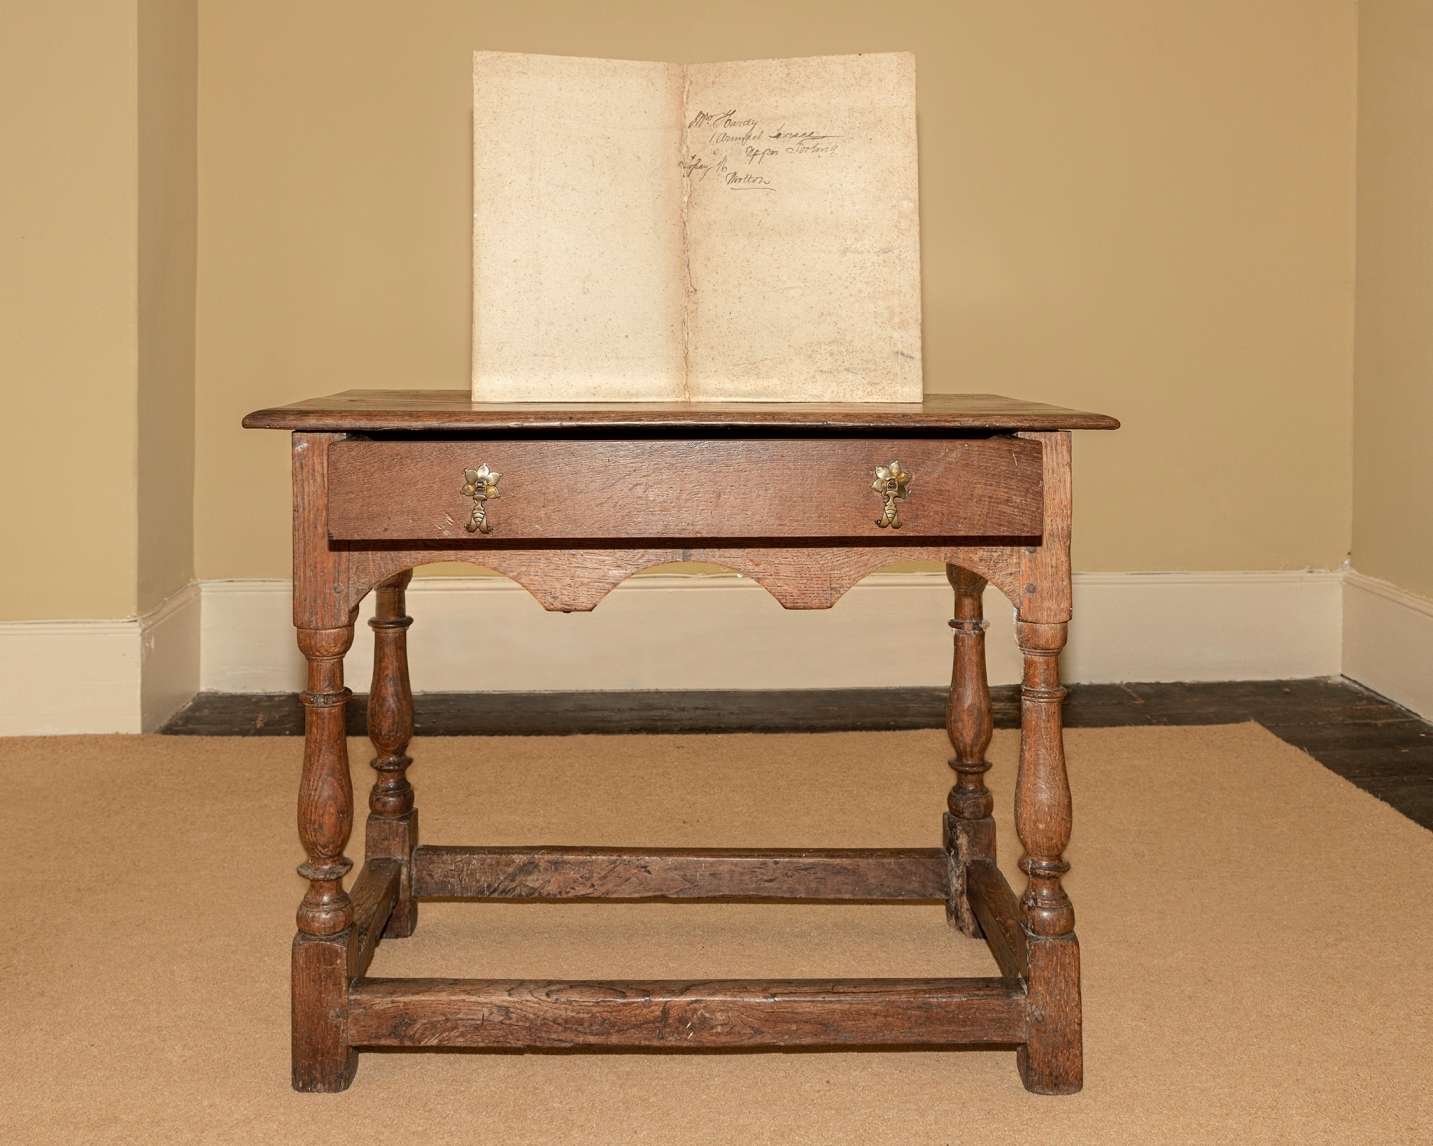 Thomas Hardy's table has returned home after more than 80 years away